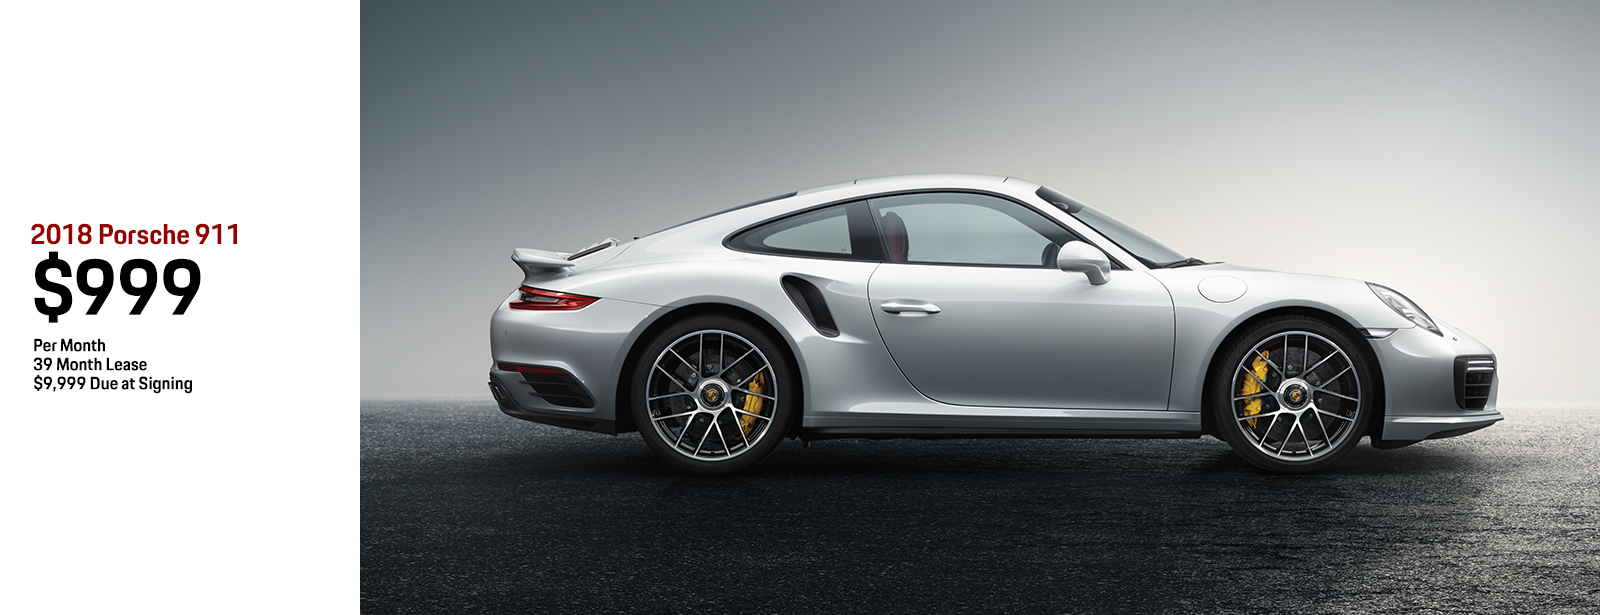 Save on your 2018 Porsche 911 monthly lease payment in Chandler, AZ